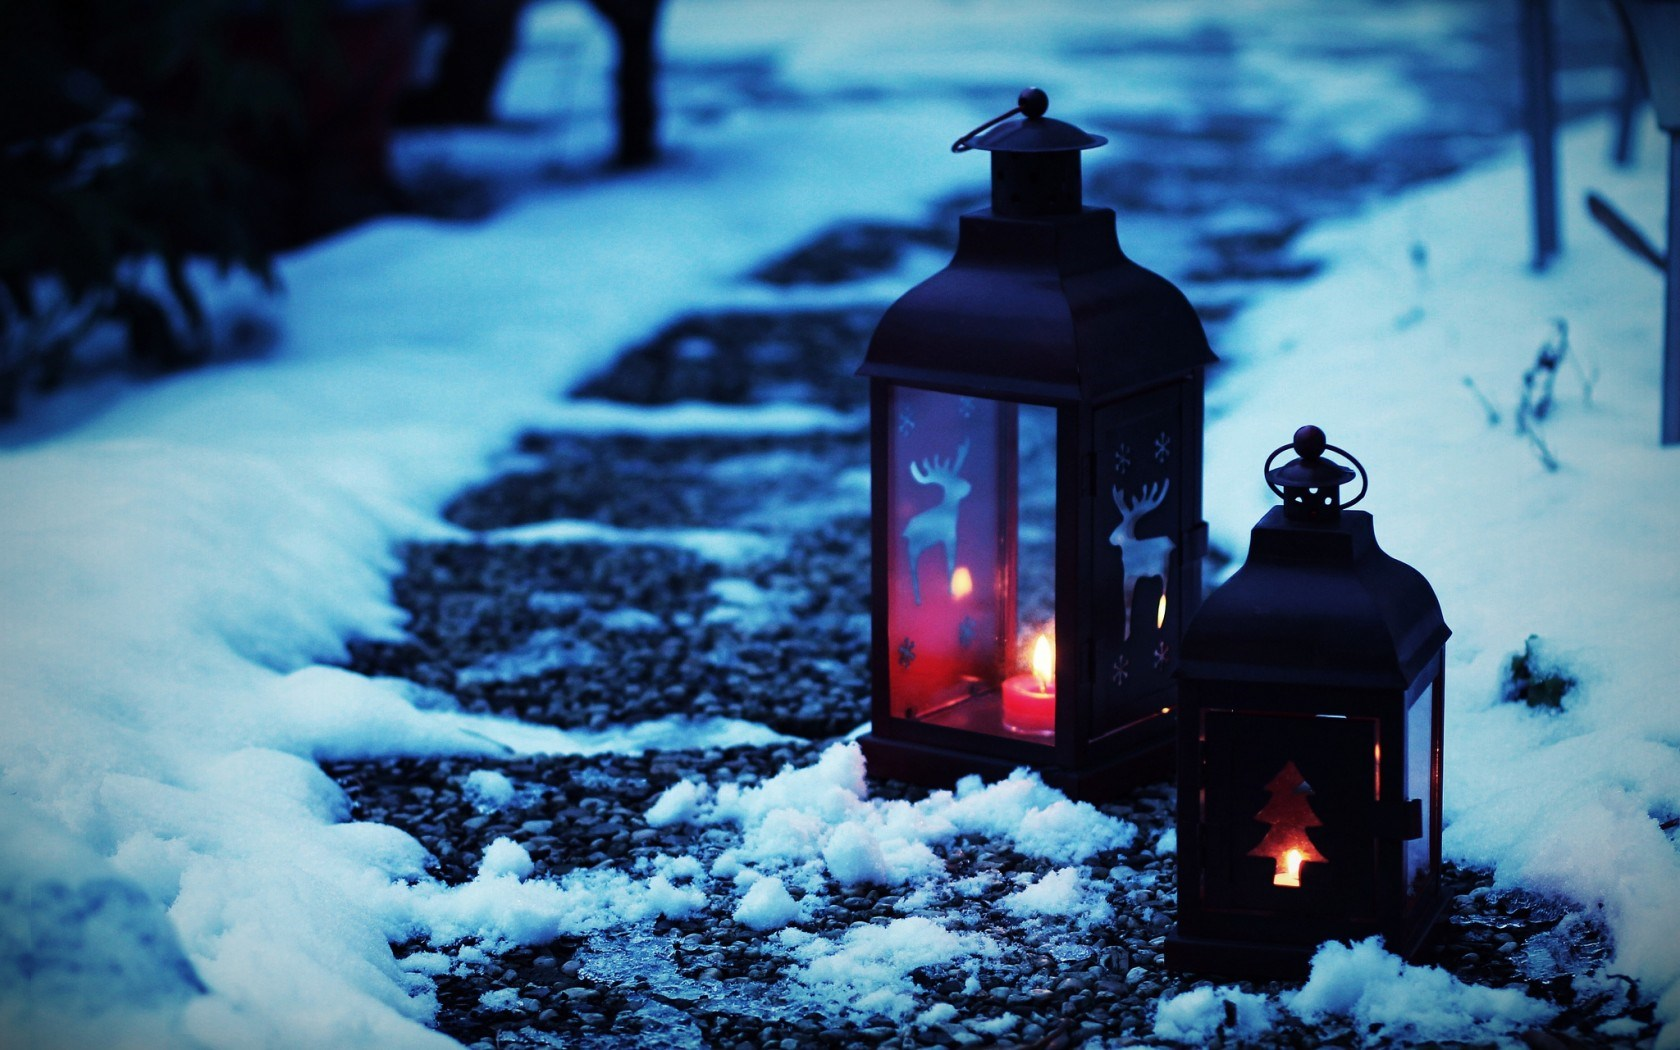 10 wonderful hd lantern wallpapers - hdwallsource